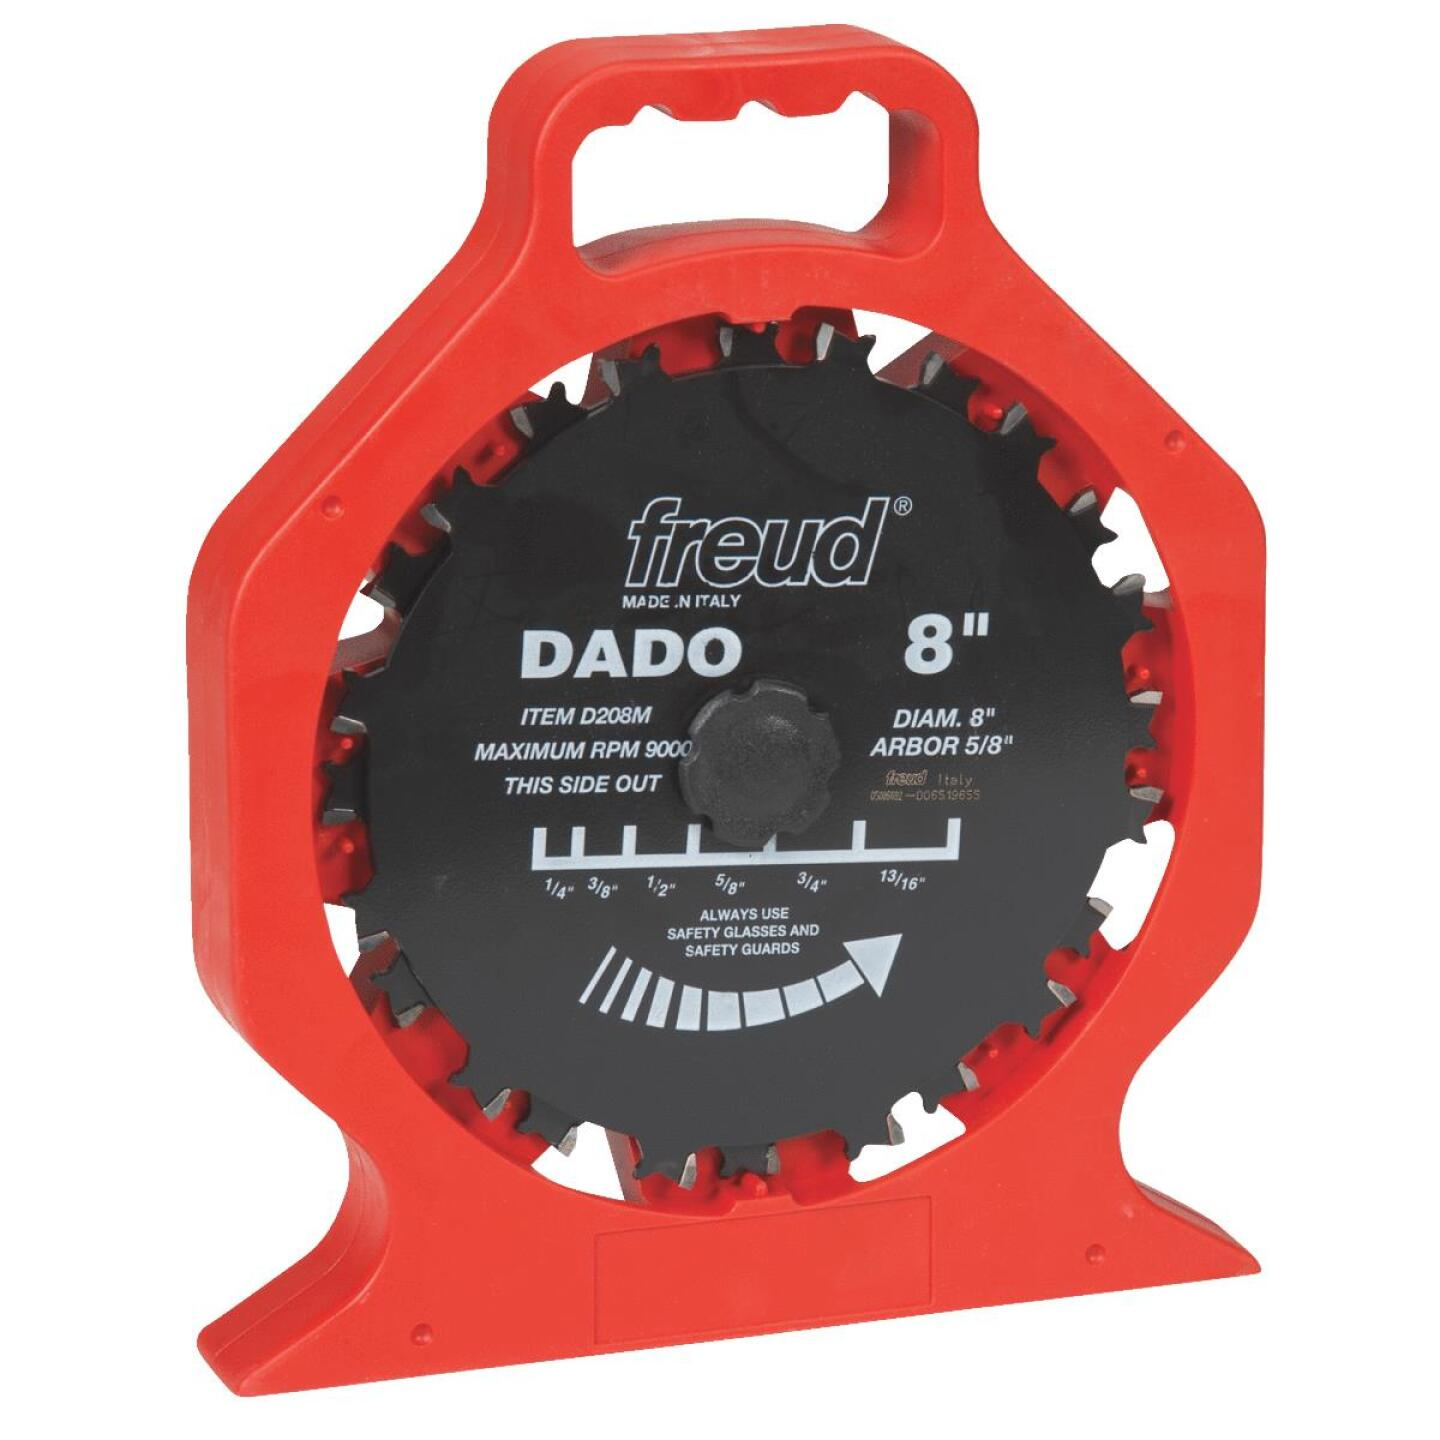 Freud 8 In. Pro Dado Circular Saw Blade Set Image 1